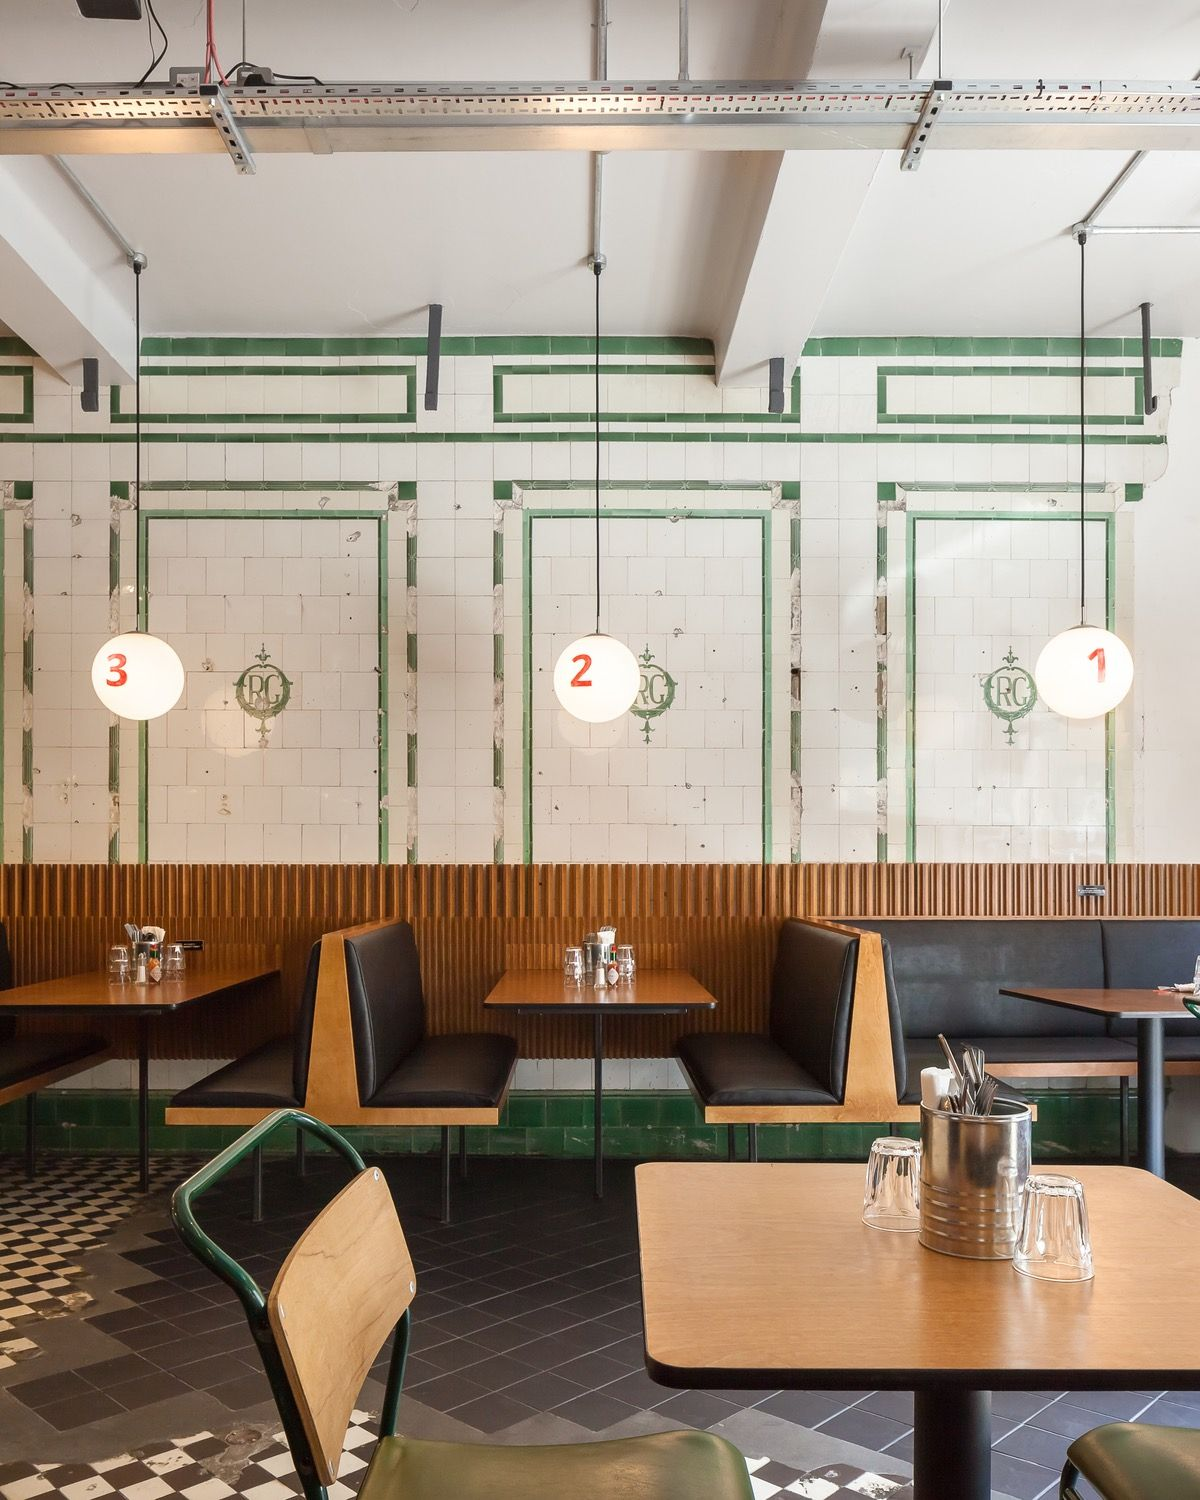 Cafe Jardin East London: MATA Architects Designed Jewish Deli Inspired By Classic